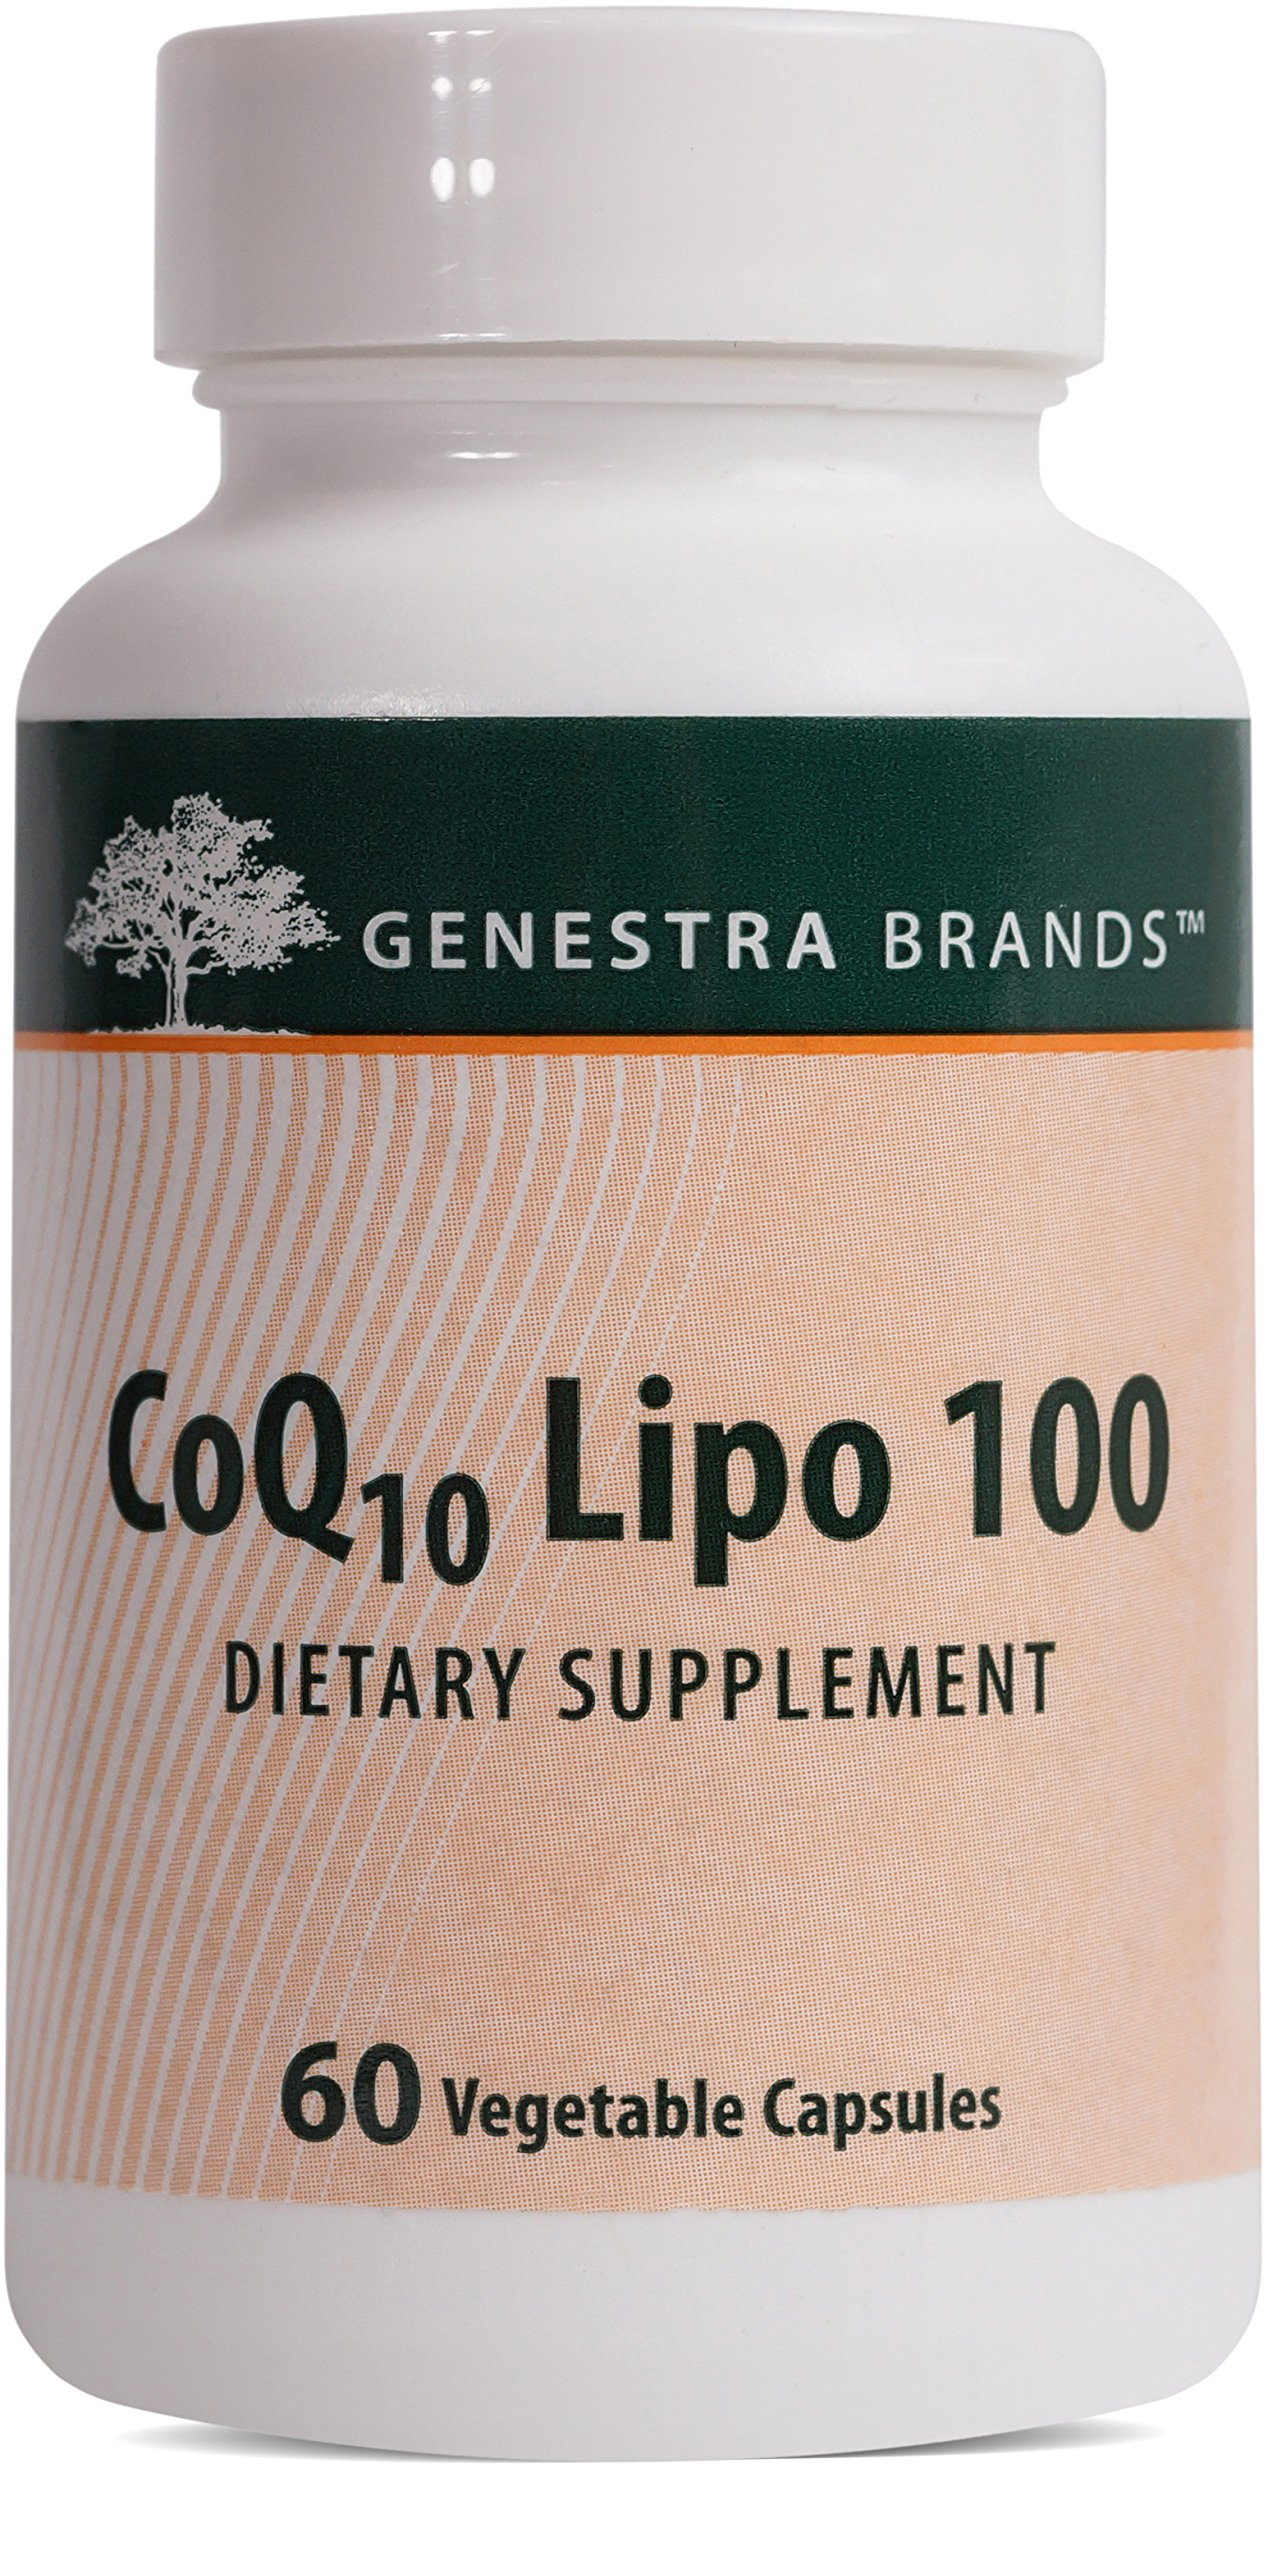 Genestra Brands - CoQ10 Lipo 100 - Antioxidant Supplement - 60 Vegetable Capsules